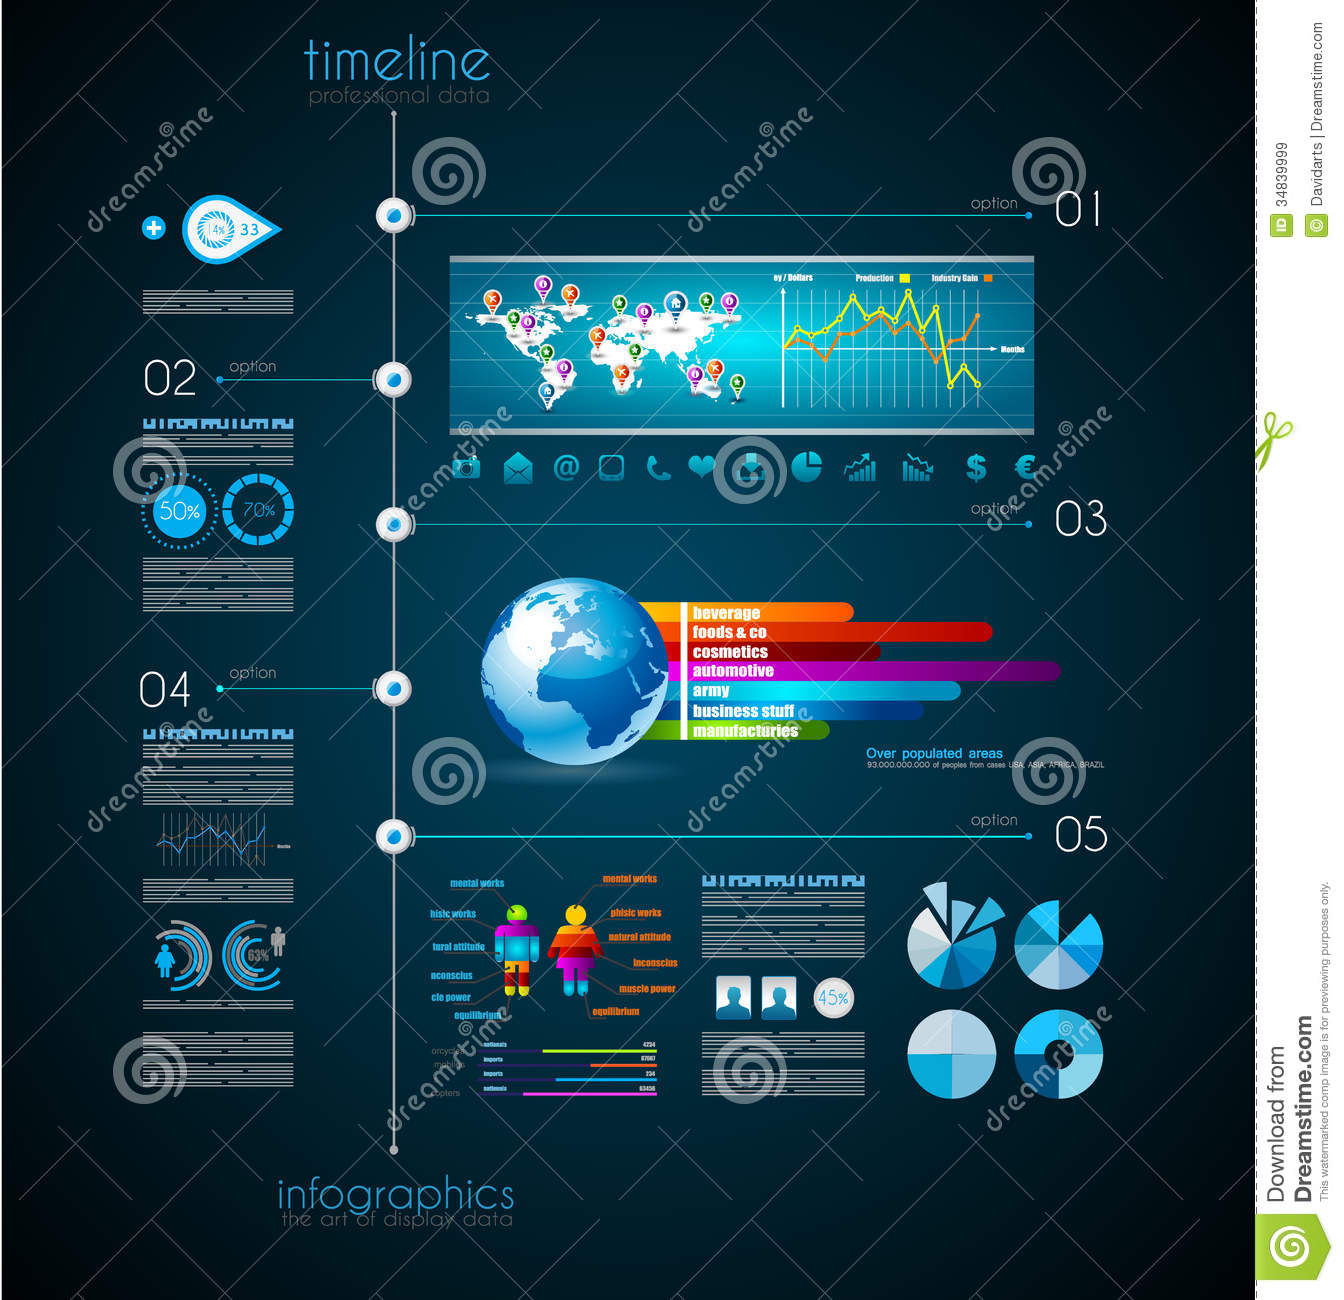 Timeline To Display Your Data With Infographic Royalty Free Stock ...